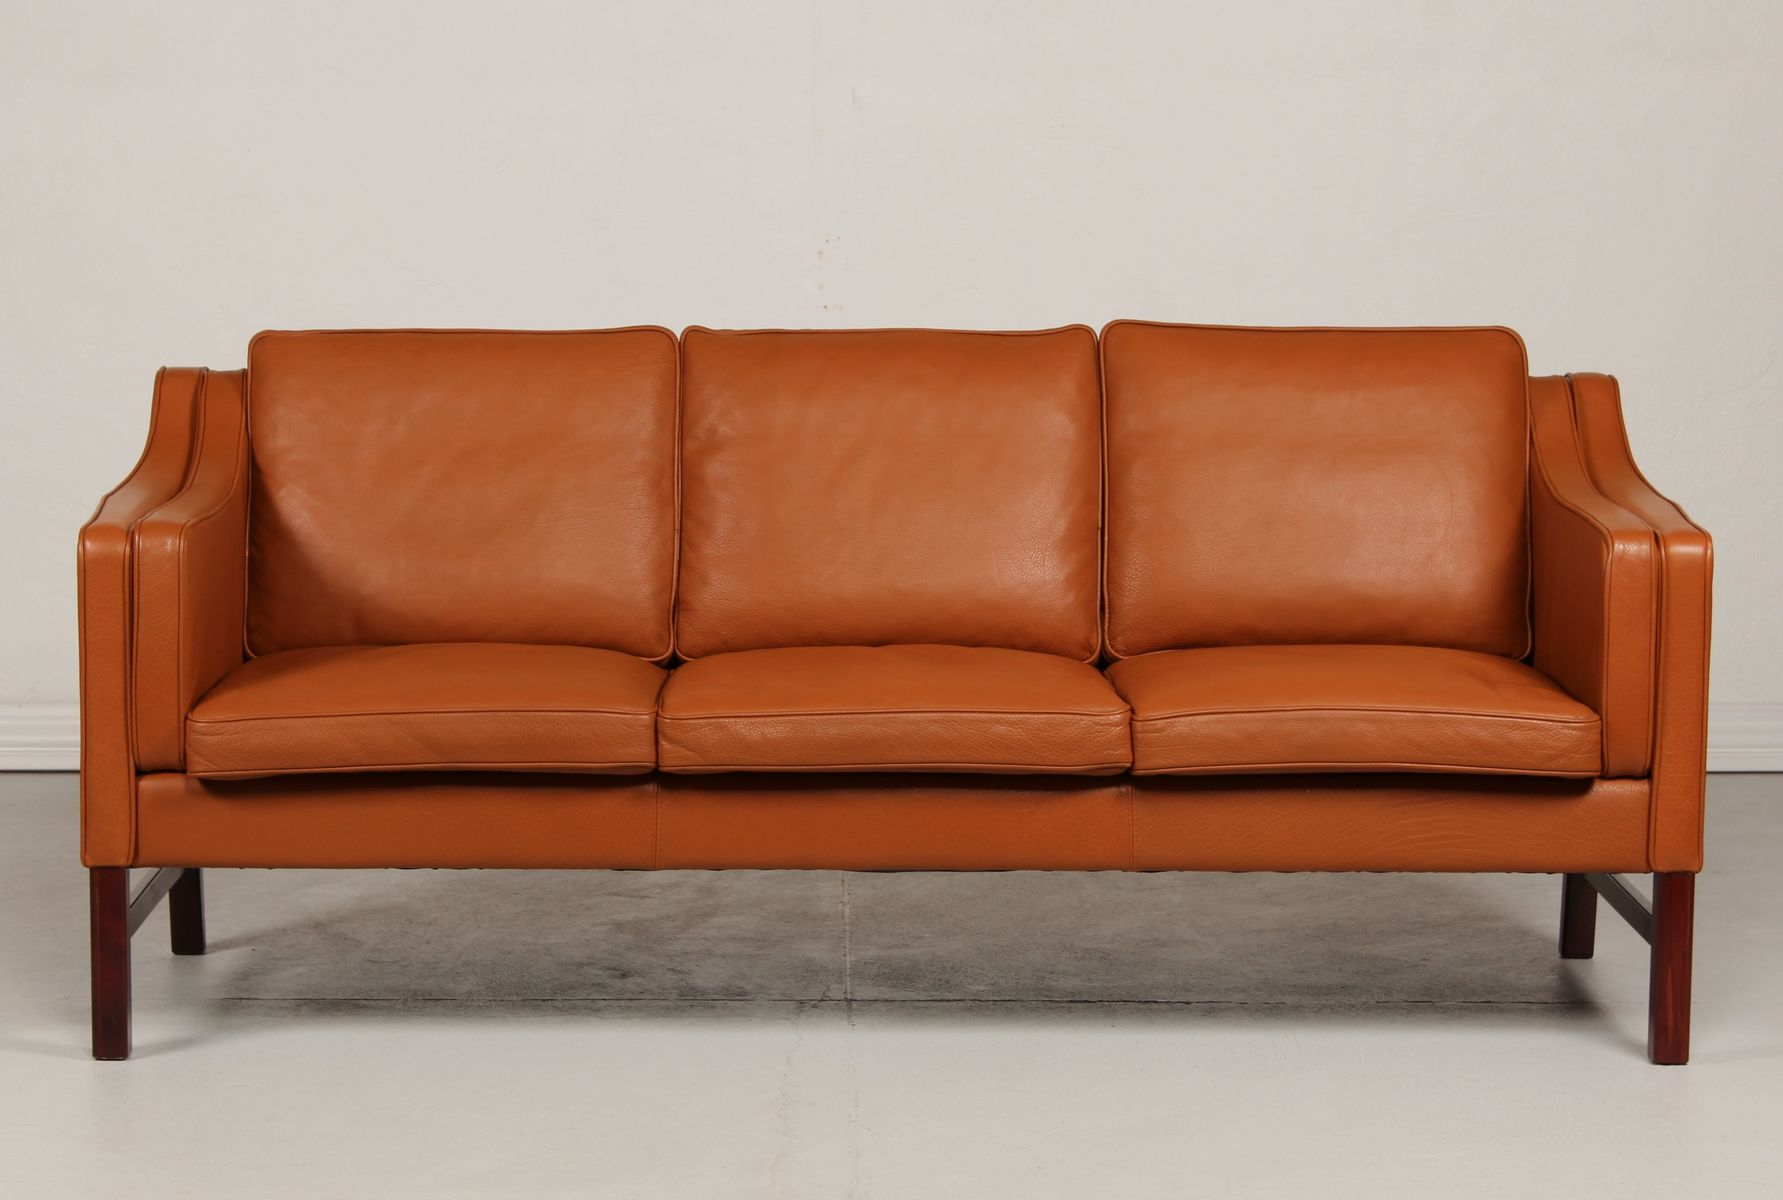 Sofa Dreams France Danish Three Seater Sofa In Cognac Leather From Skipper